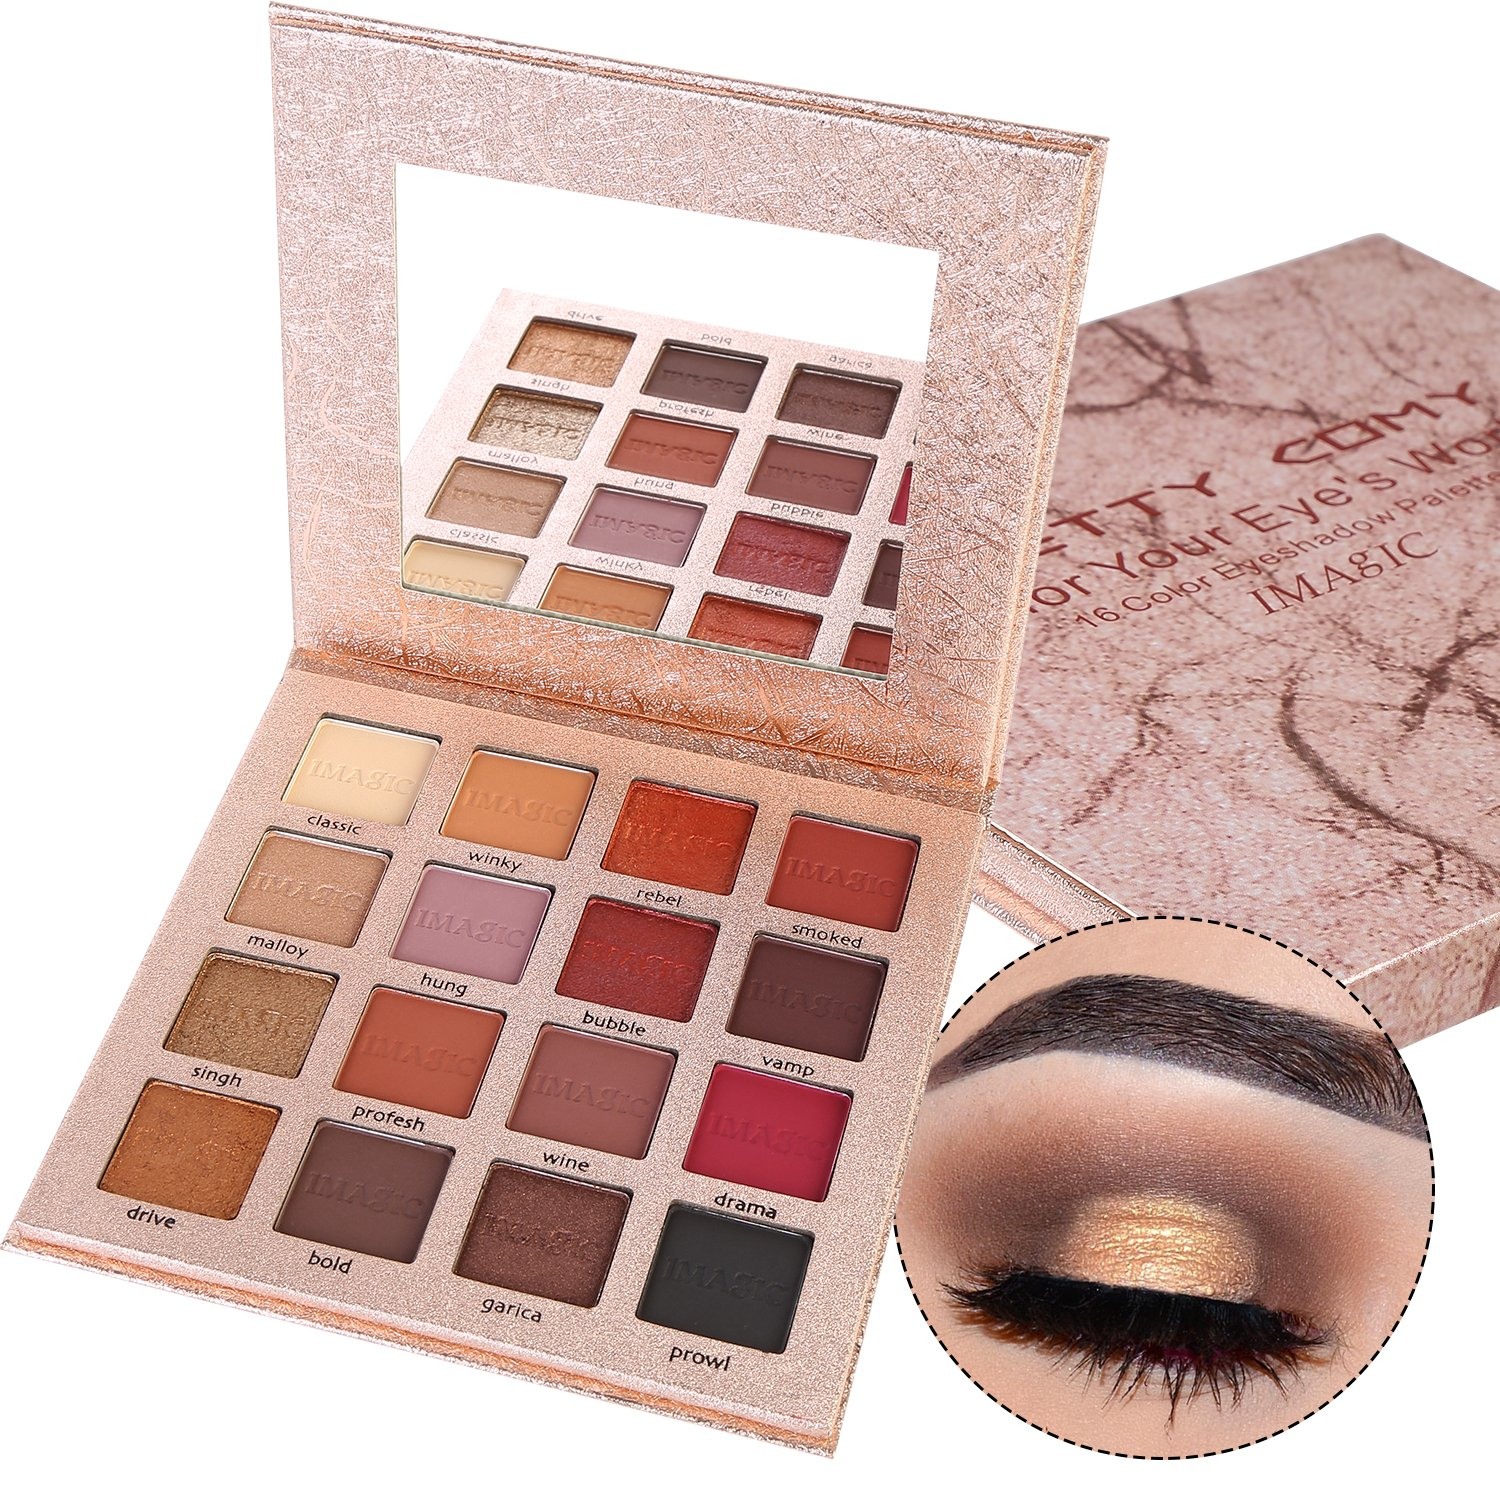 16 Colors Eyeshadow Palette Glitter and Matte Shimmer Waterproof Durable Pigmented Eye Shadow Powder Makeup Pretty Comy